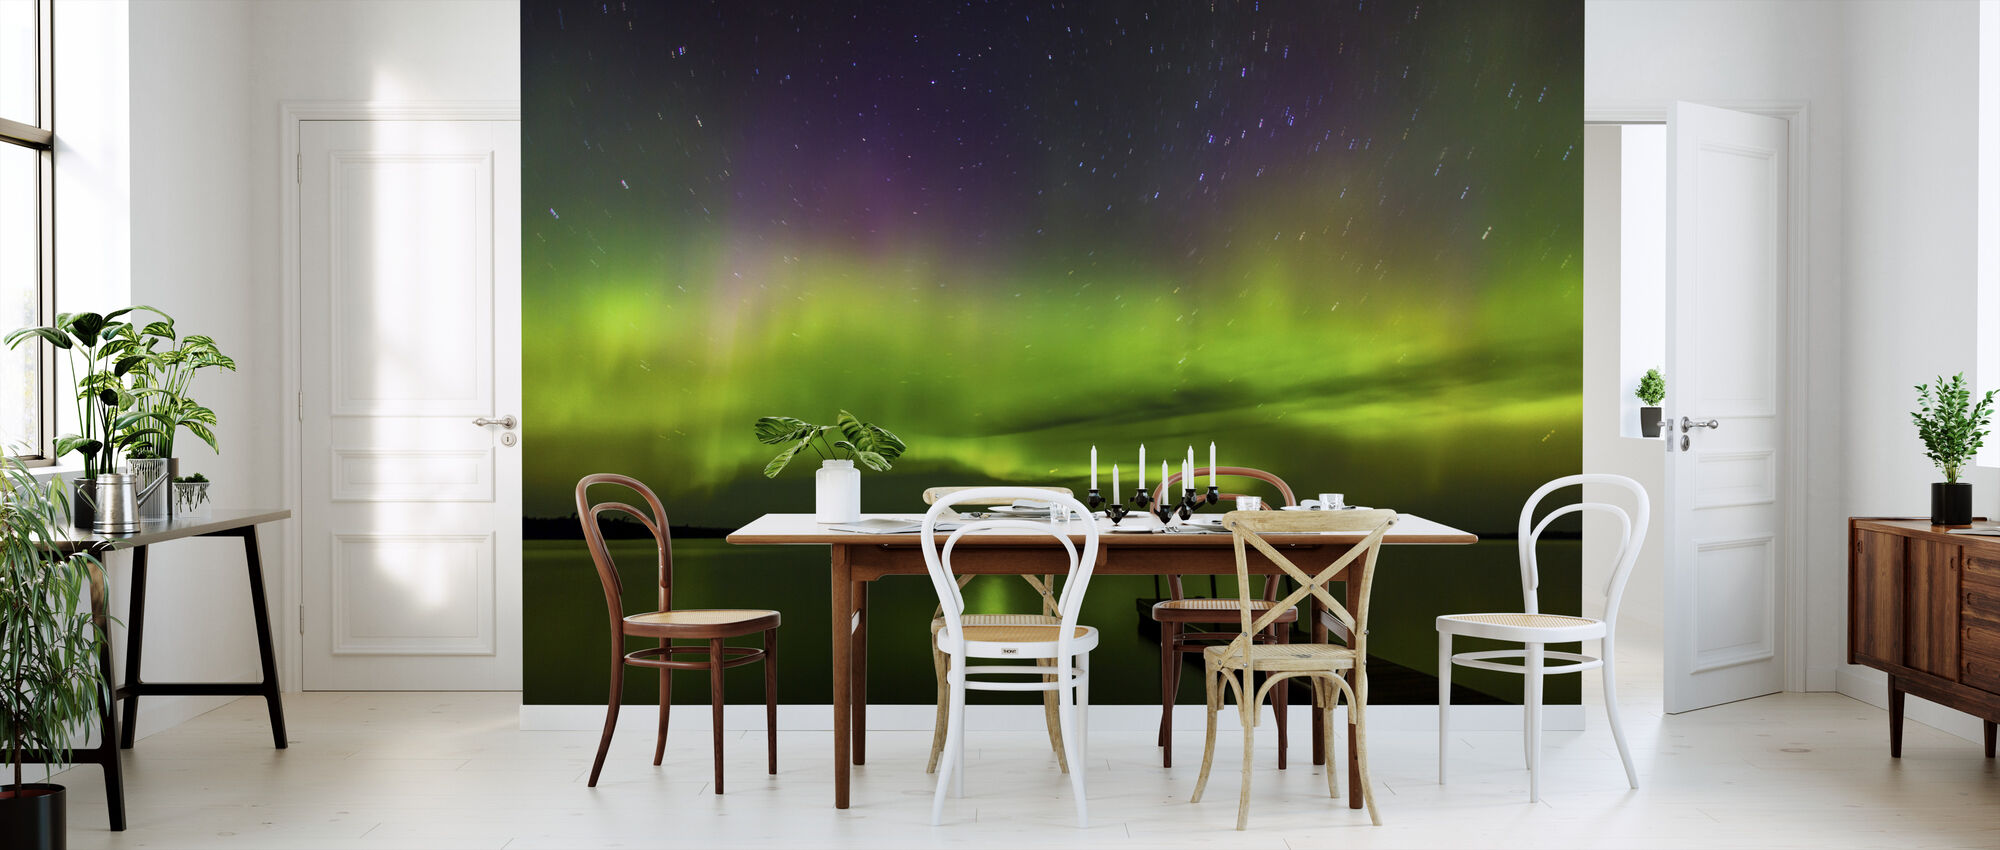 Aurora Borealis over Burntside Lake - Wallpaper - Kitchen